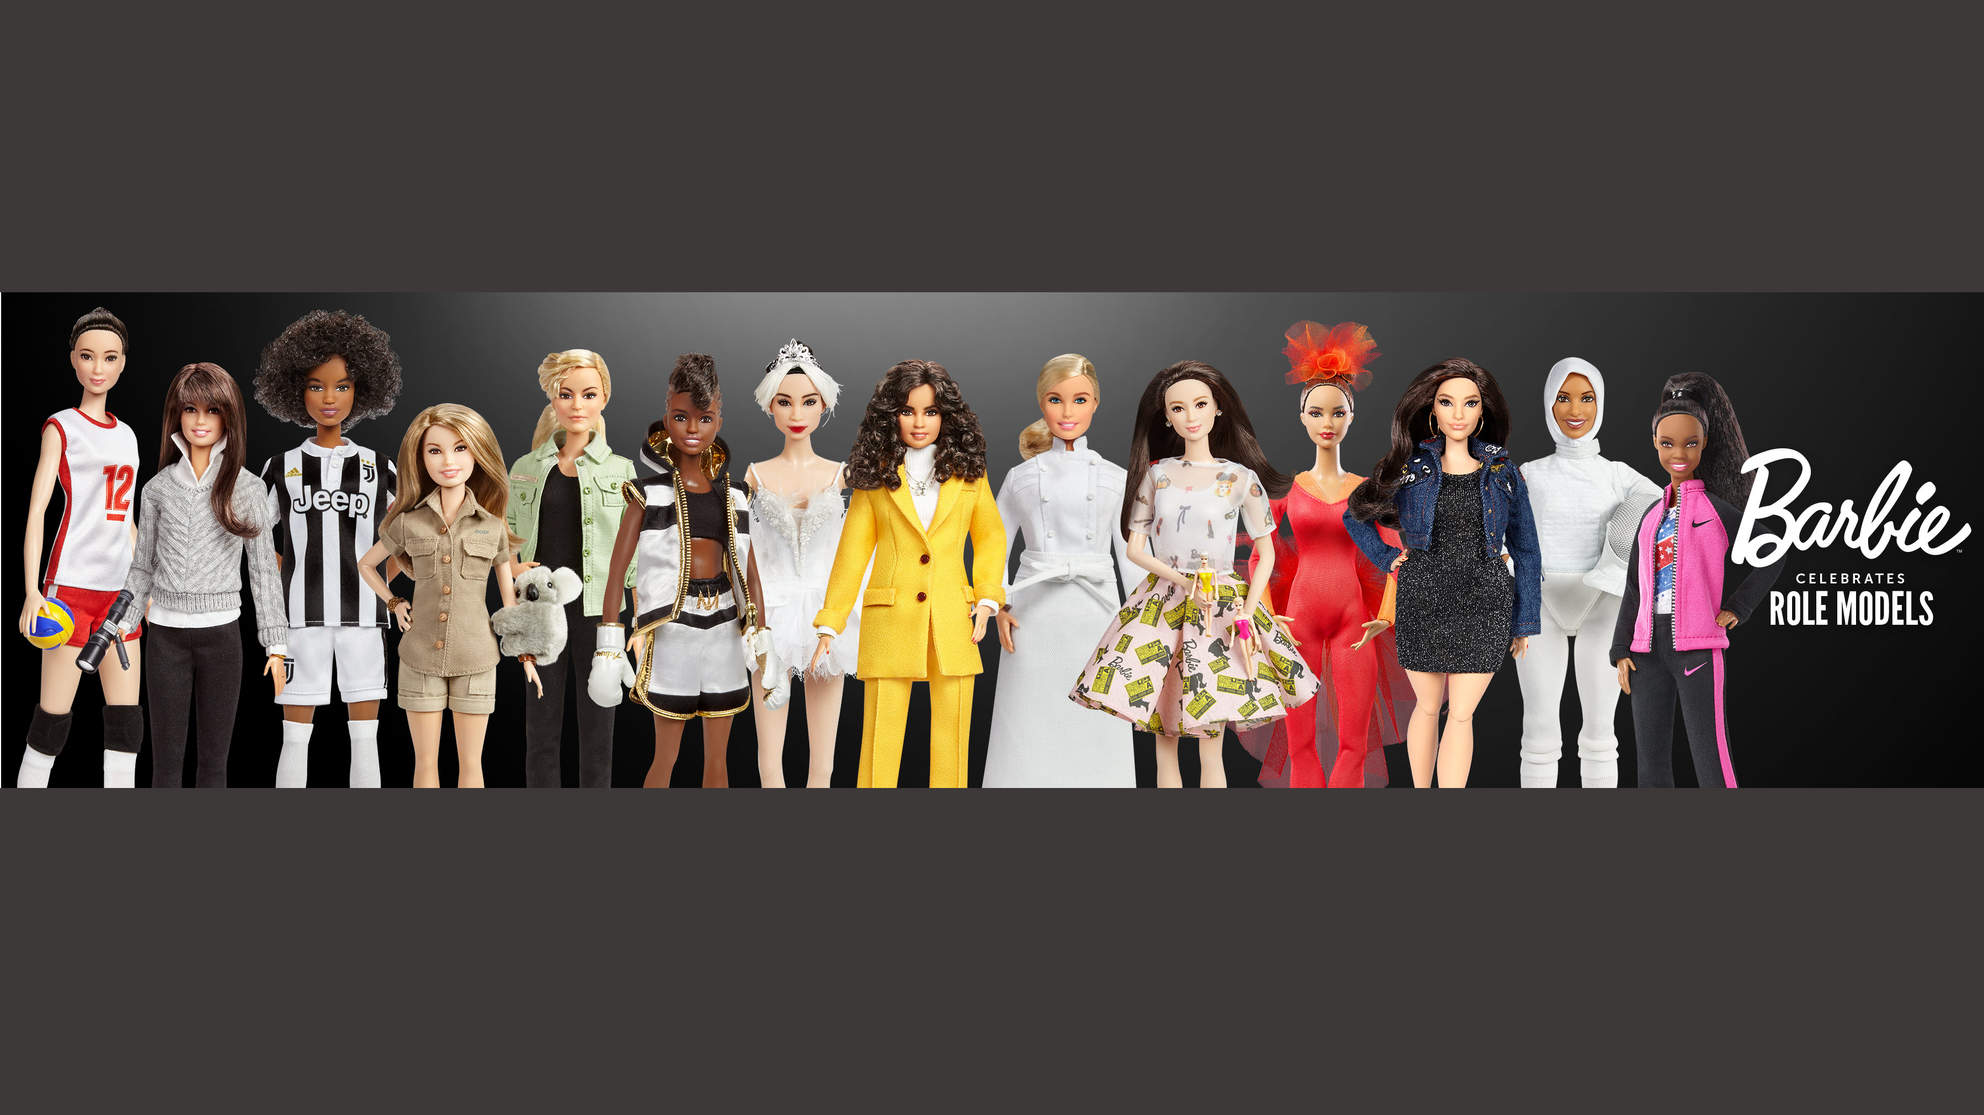 a report on barbie the role model of american women It's a massive risk for mattel barbie is more than just a doll the brand does $1 billion in sales across more than 150 countries annually, and 92% of american girls ages 3 to 12 have owned a.